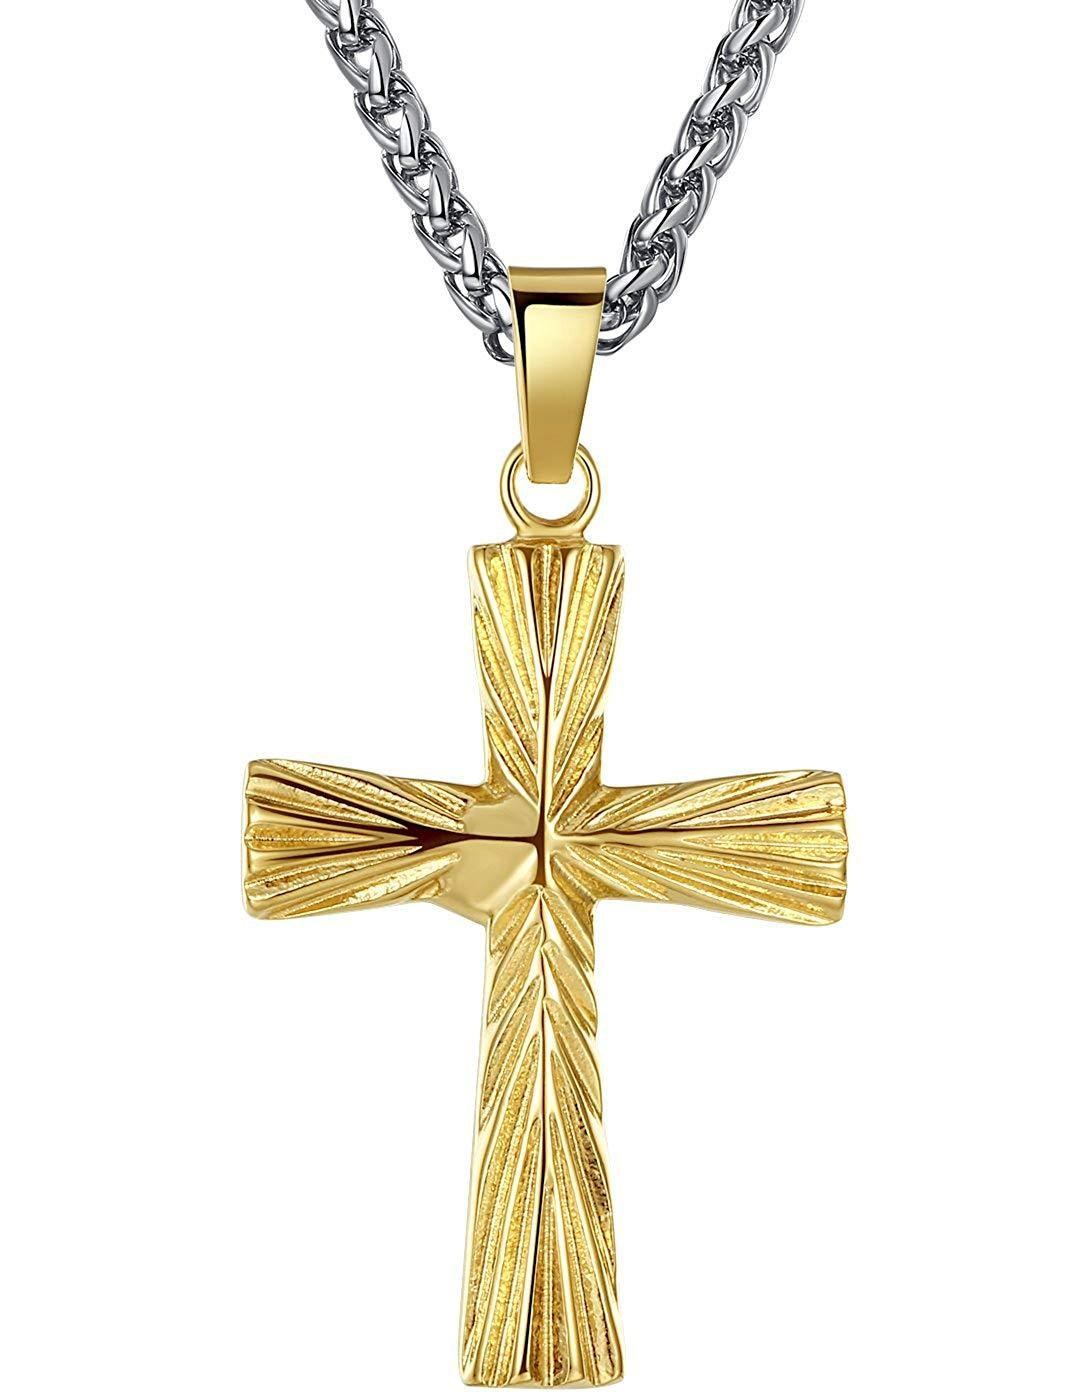 Aoiy Men's Stainless Steel Cross Religious Pendant Necklace 24 Link Chain @ Sons of Odin™ -Jewelry